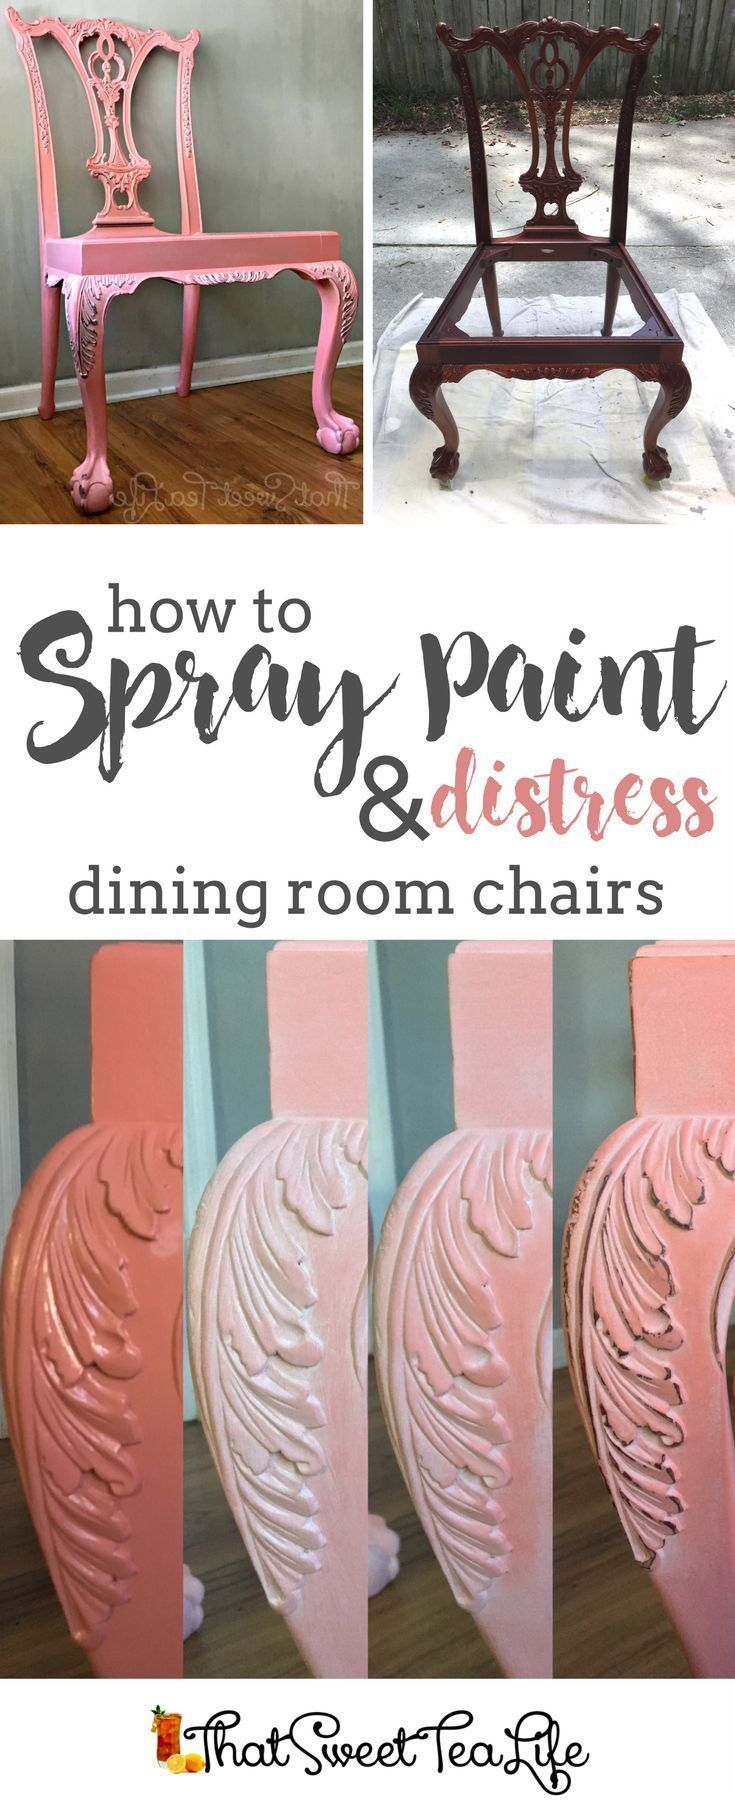 How to Spray Paint, Glaze & Distress Furniture easily by That Sweet Tea Life | How to Paint Furniture | How to Paint Dining Room Chairs | Coral Chairs | Coral Furniture | Pink Chairs | Pink Furniture | Quickest way to Paint Furniture | Unicorn Spit Glazing